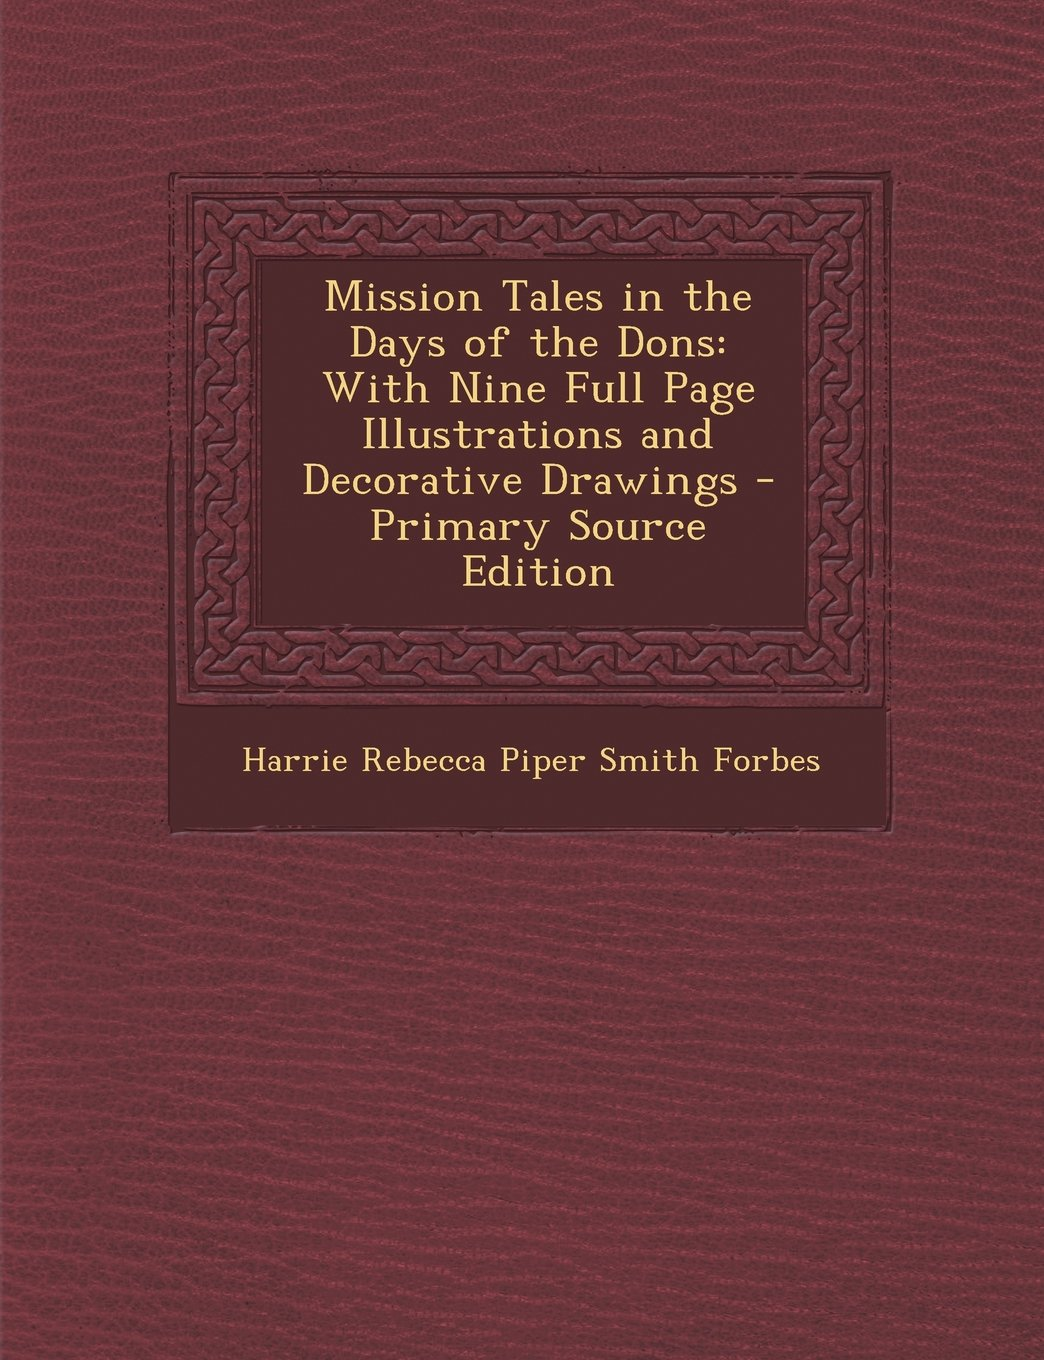 Mission Tales in the Days of the Dons: With Nine Full Page Illustrations and Decorative Drawings - Primary Source Edition pdf epub